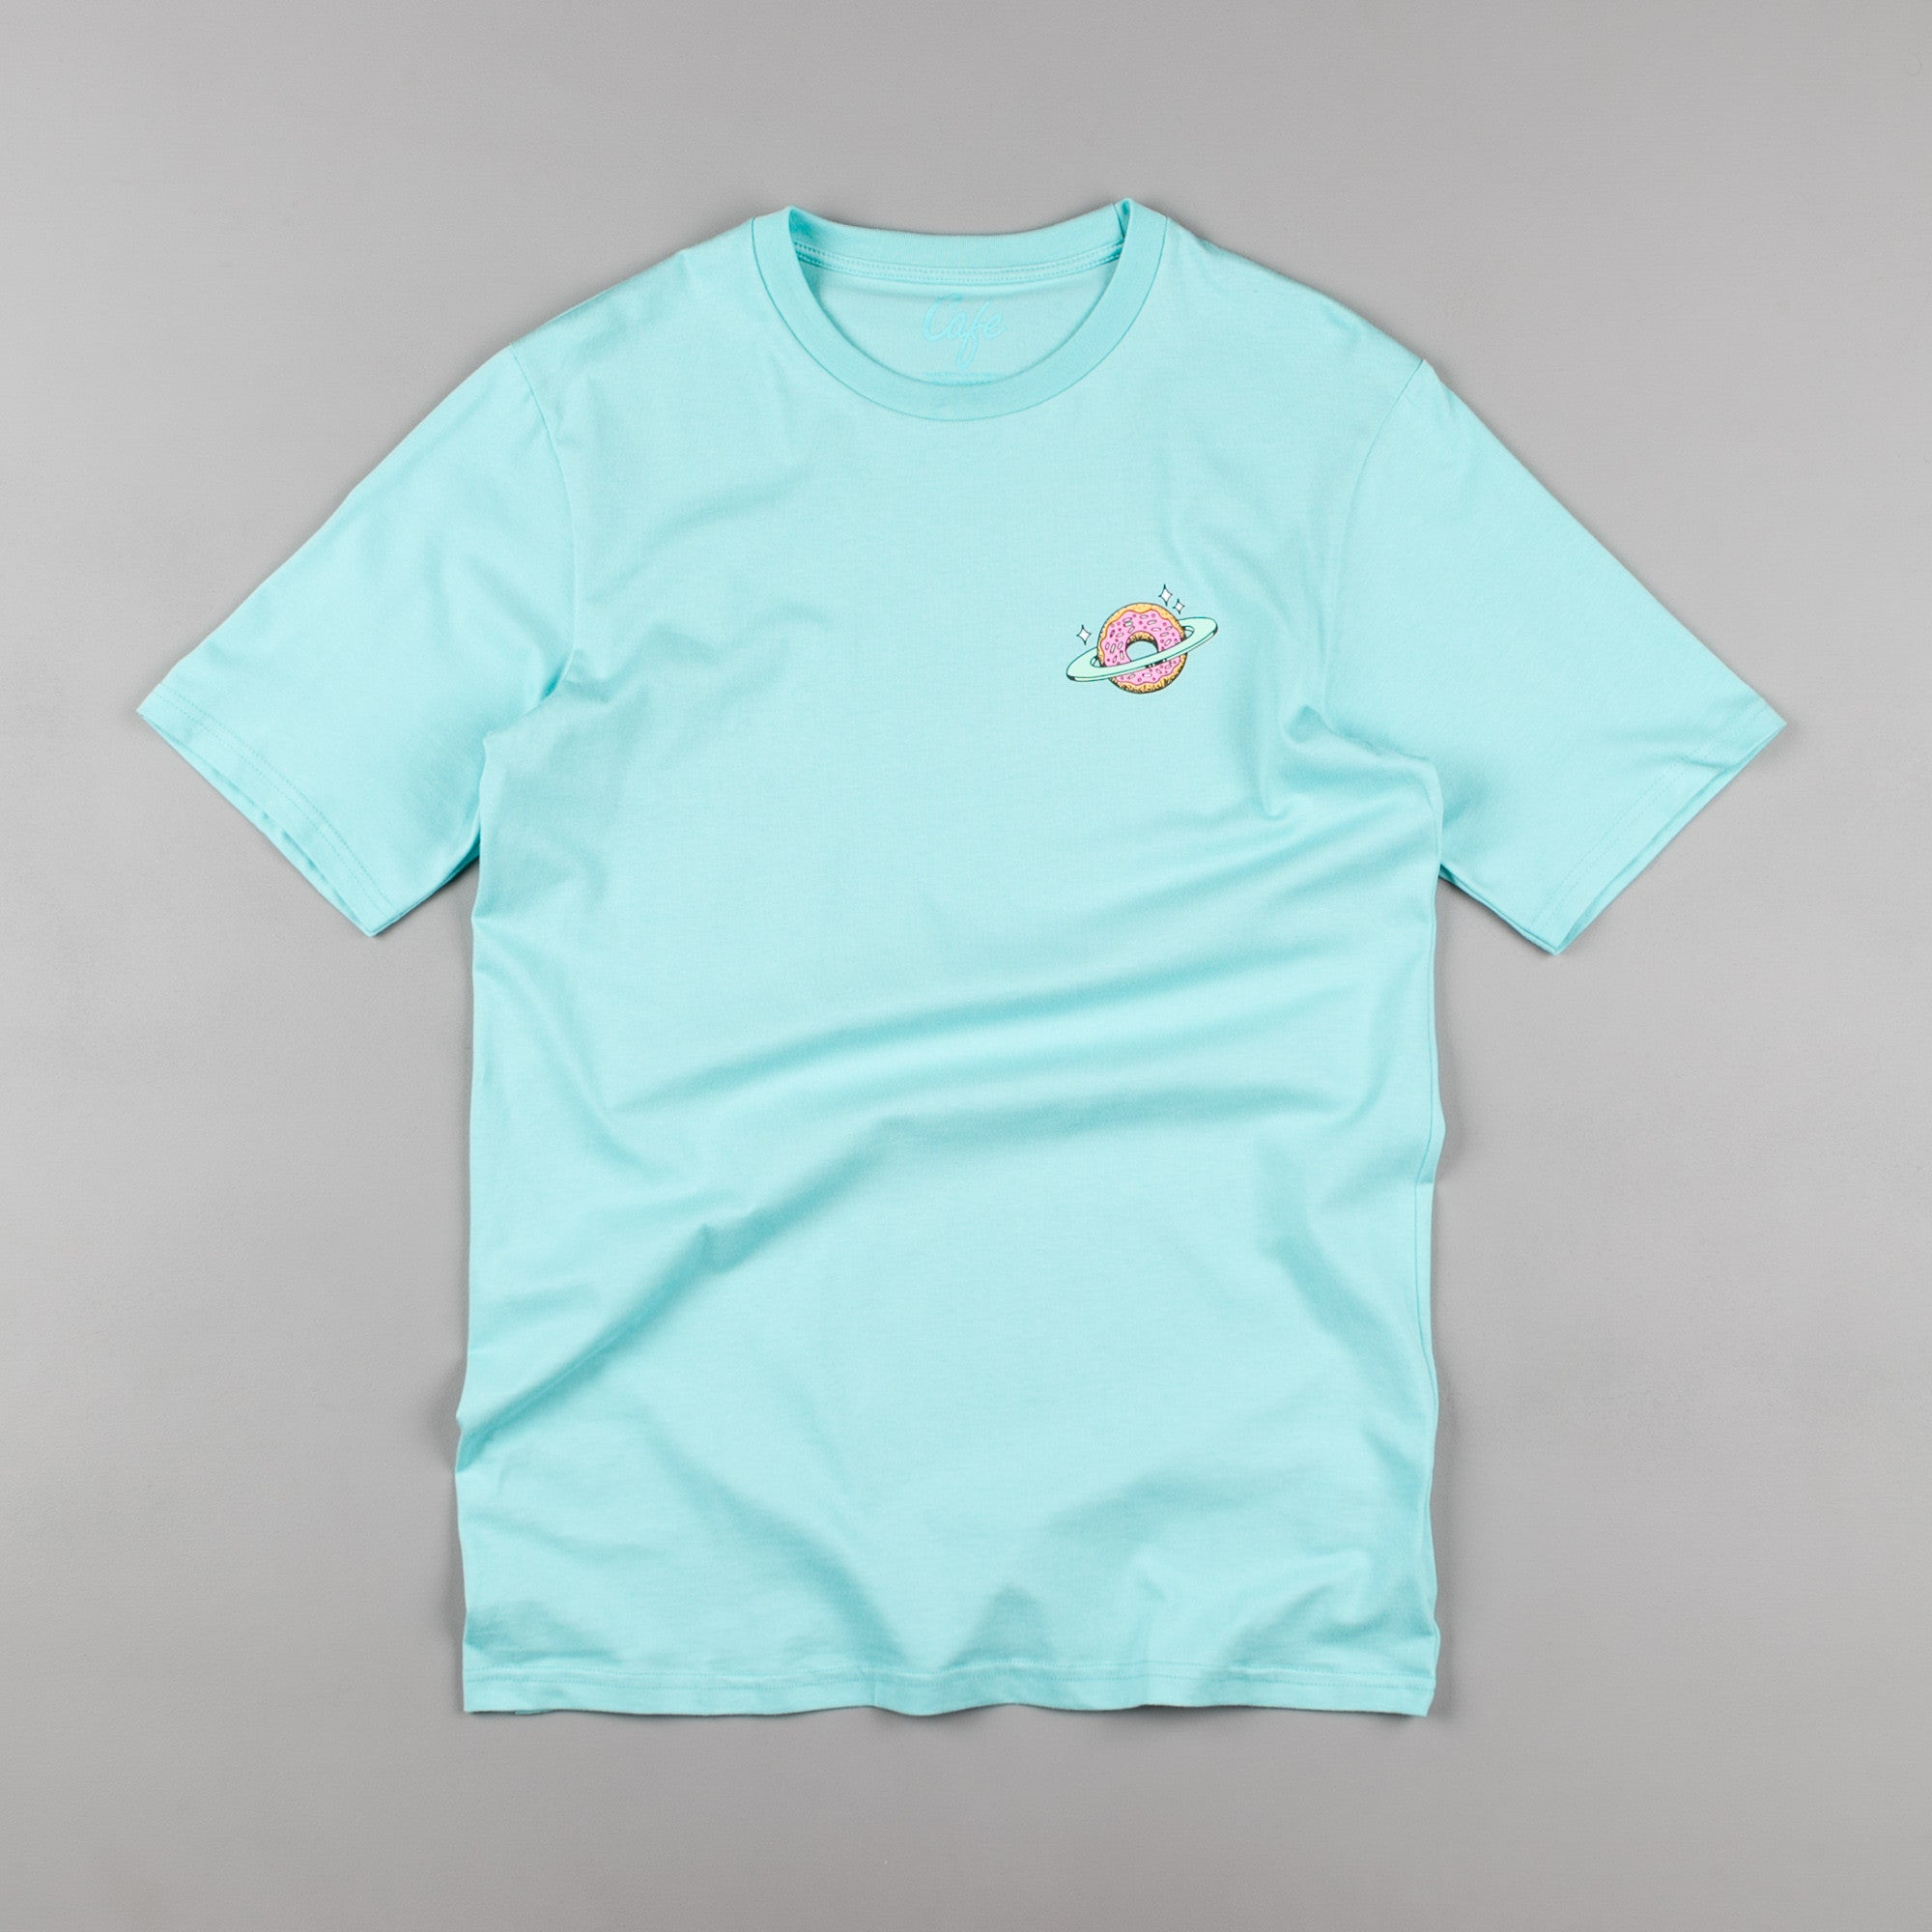 Skateboard Cafe Planet Donut T-Shirt - Aqua